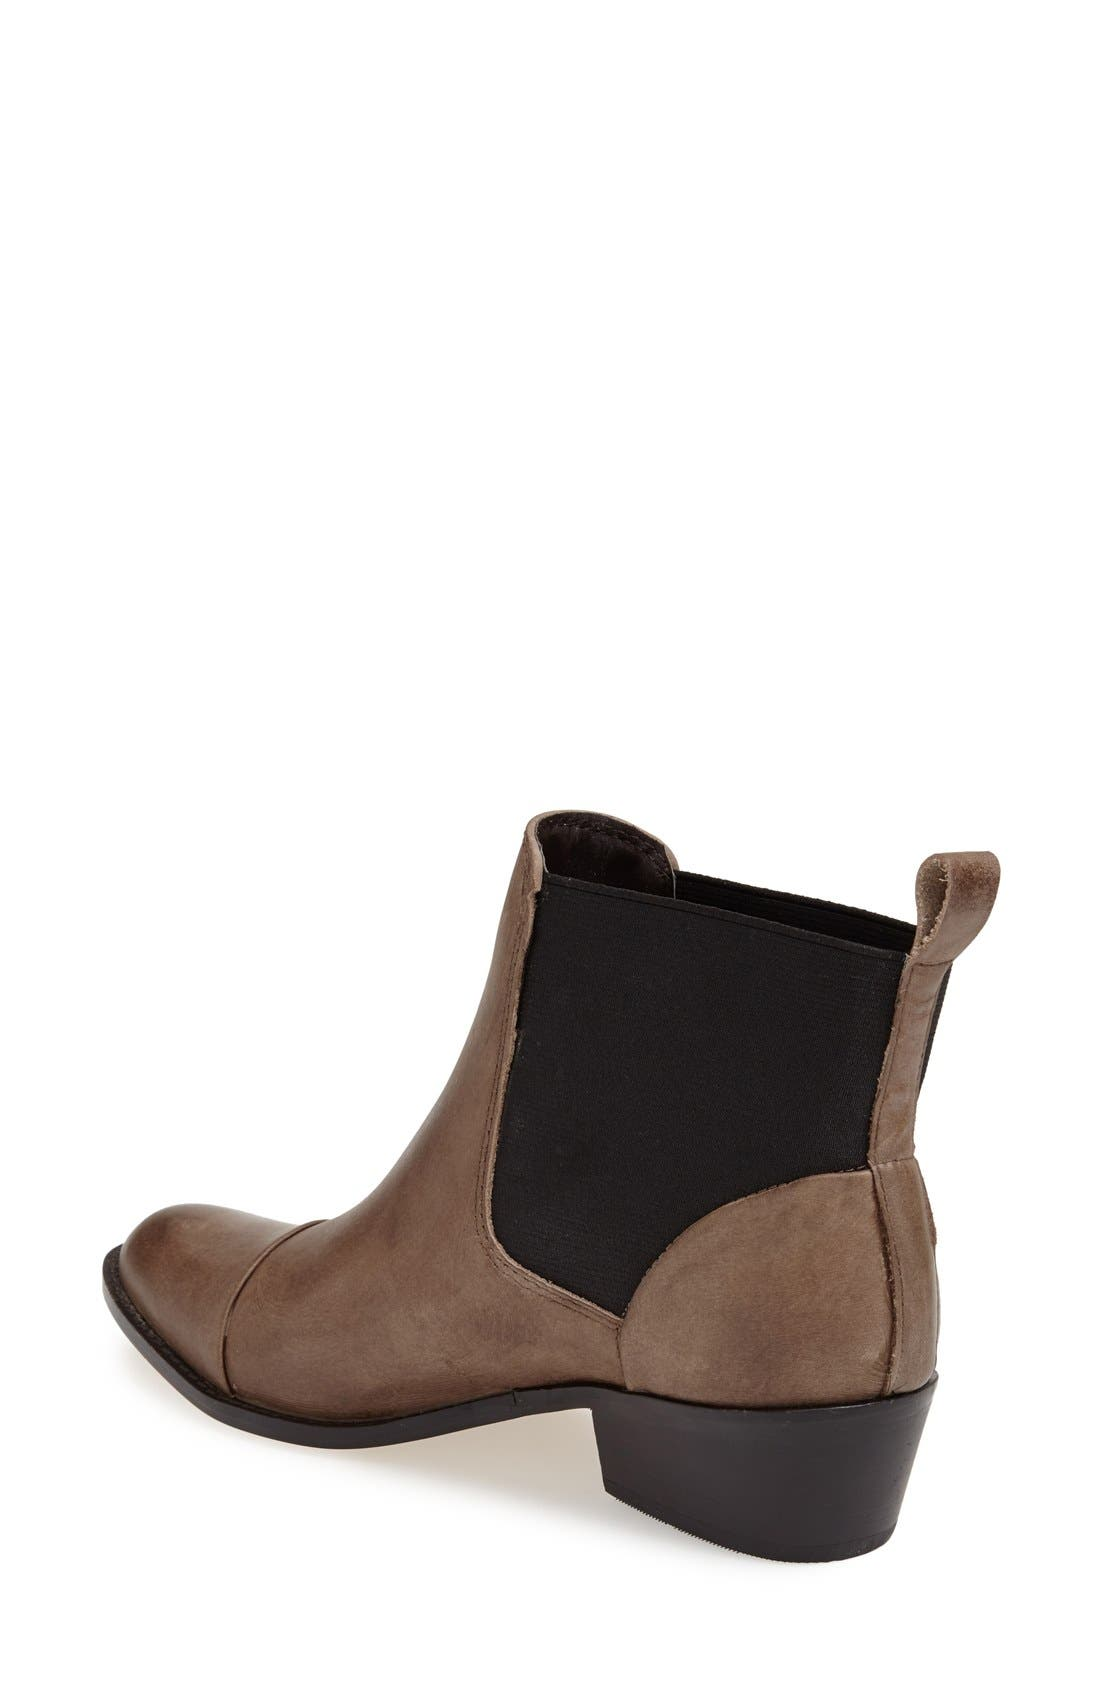 Alternate Image 2  - DV by Dolce Vita 'Vancie' Leather Bootie (Women)